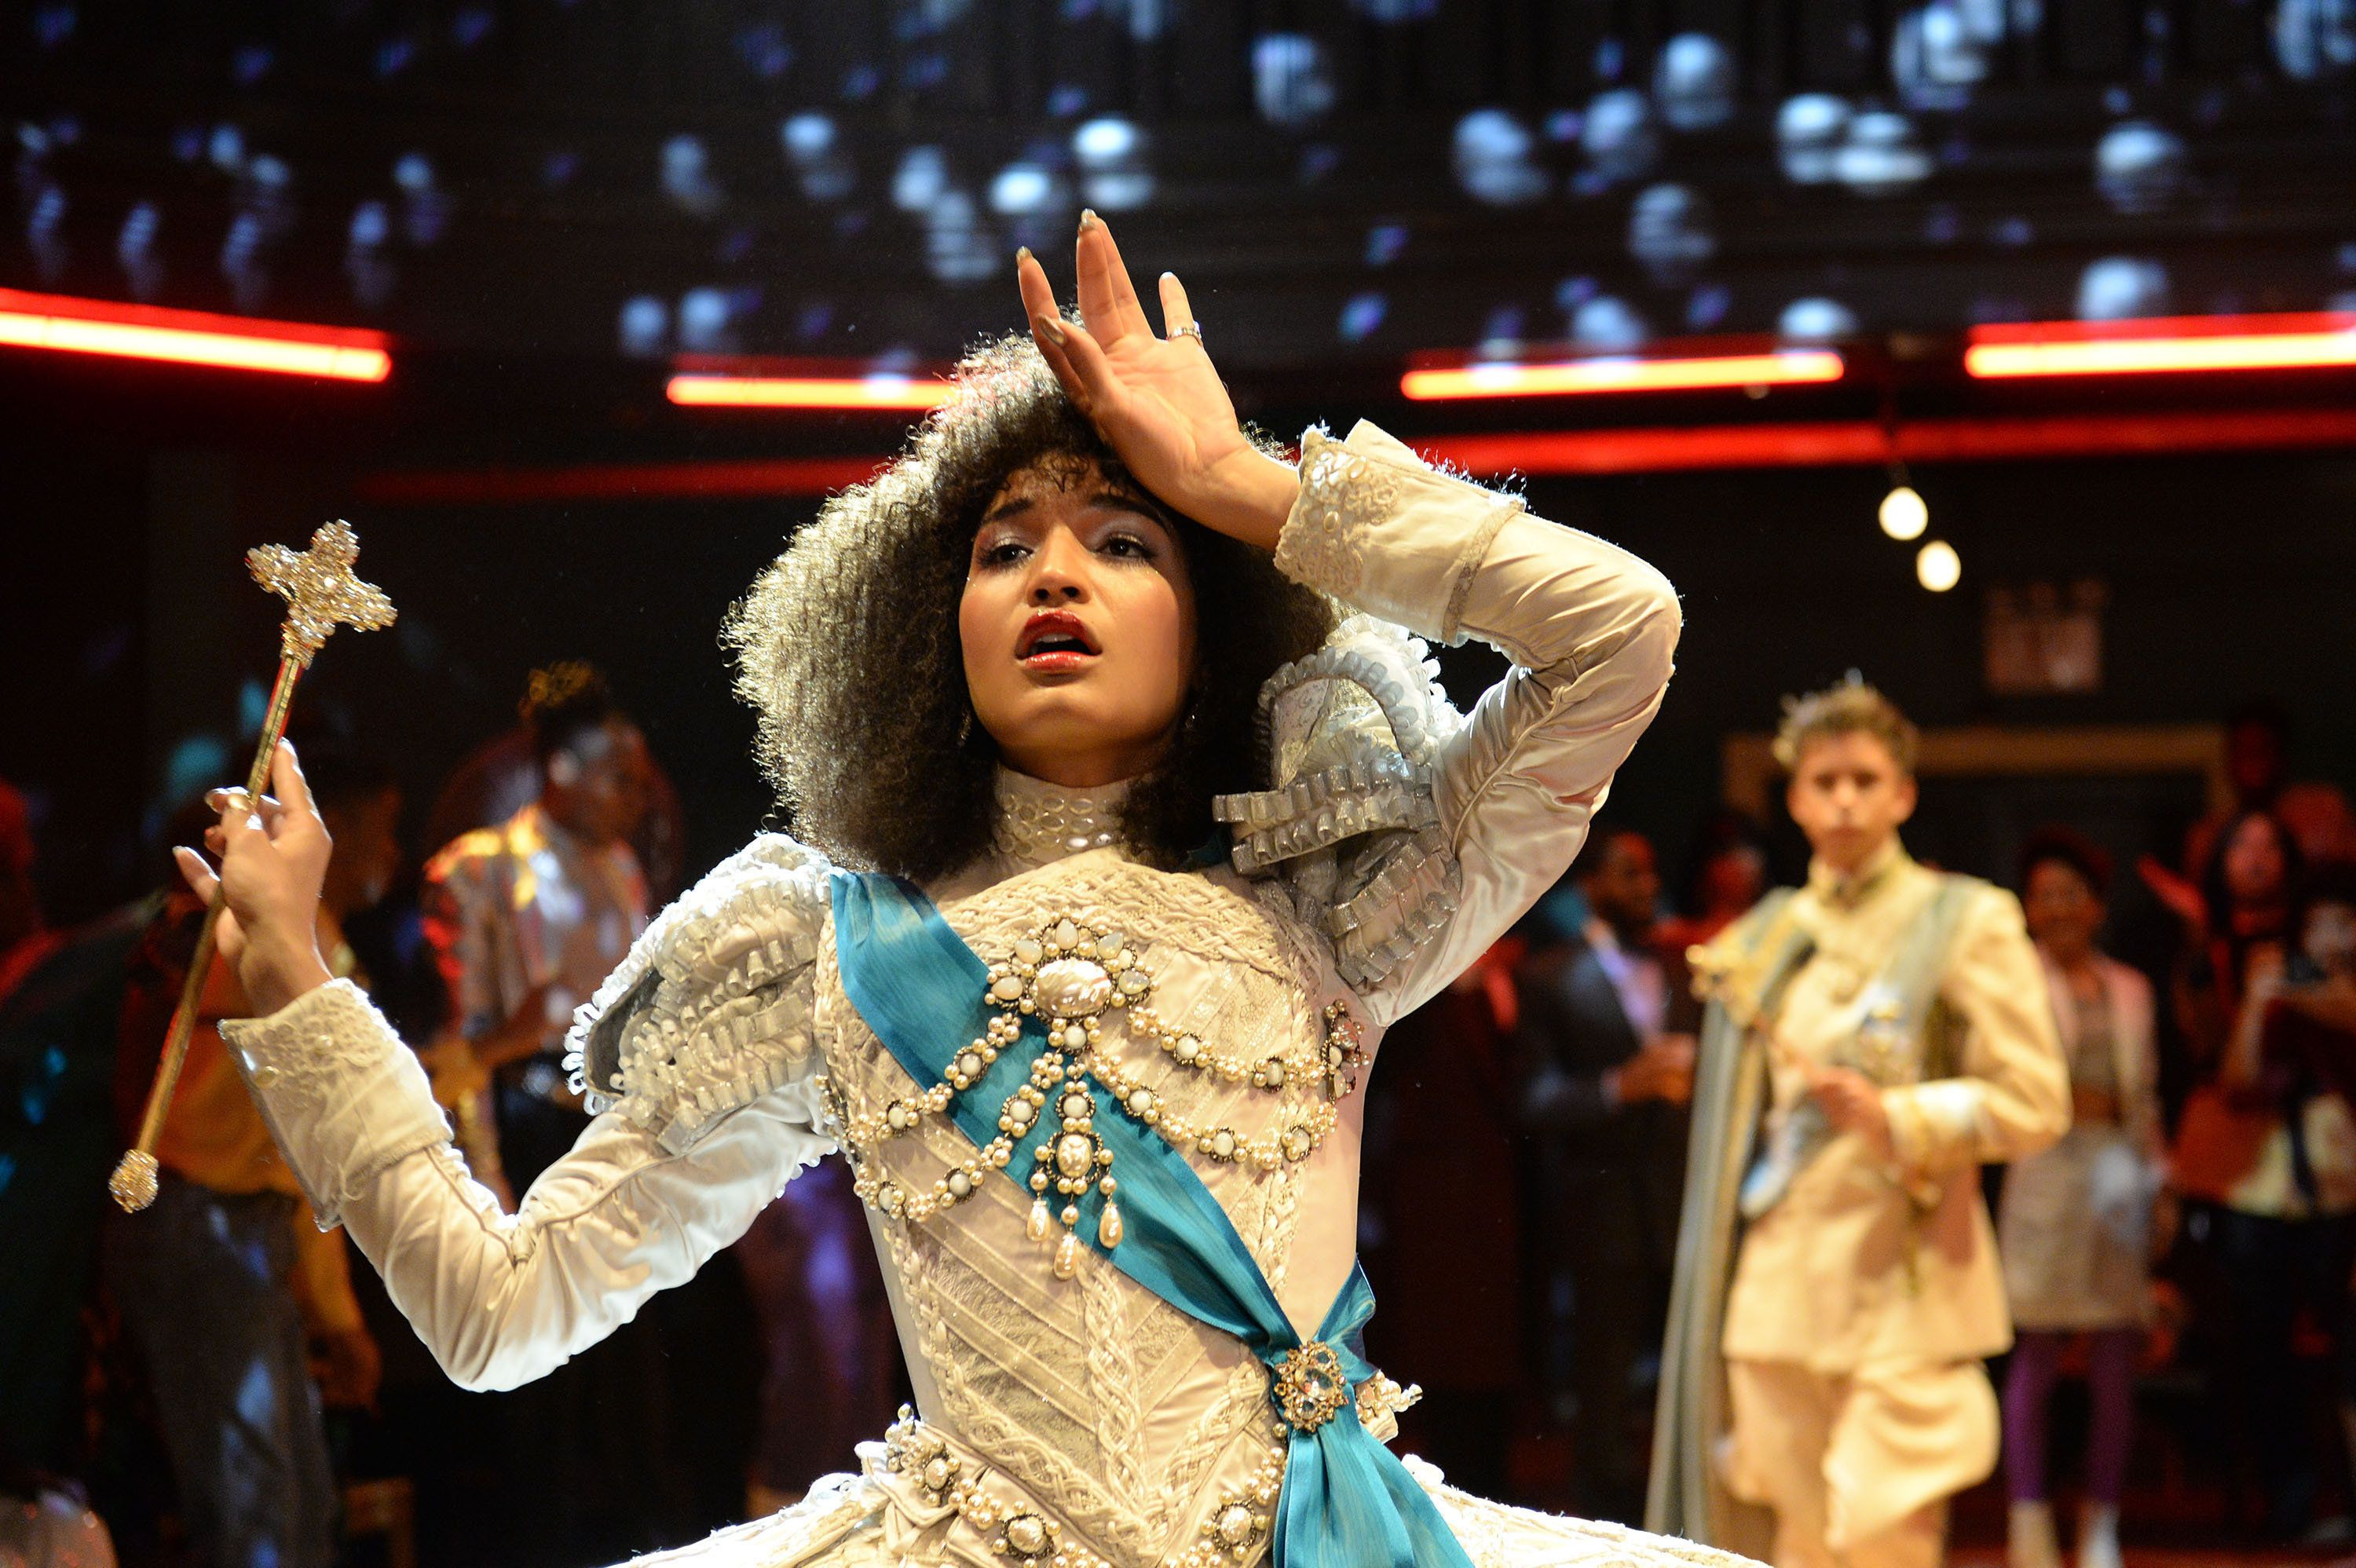 POSE -- Indya Moore as Angel competes in the 1987 ballroom category ROYALTY REALNESS in a scene from the pilot of POSE. Ballroom legends and survivors served as consultants for this and other scenes. CR: JoJo Whilden/FX